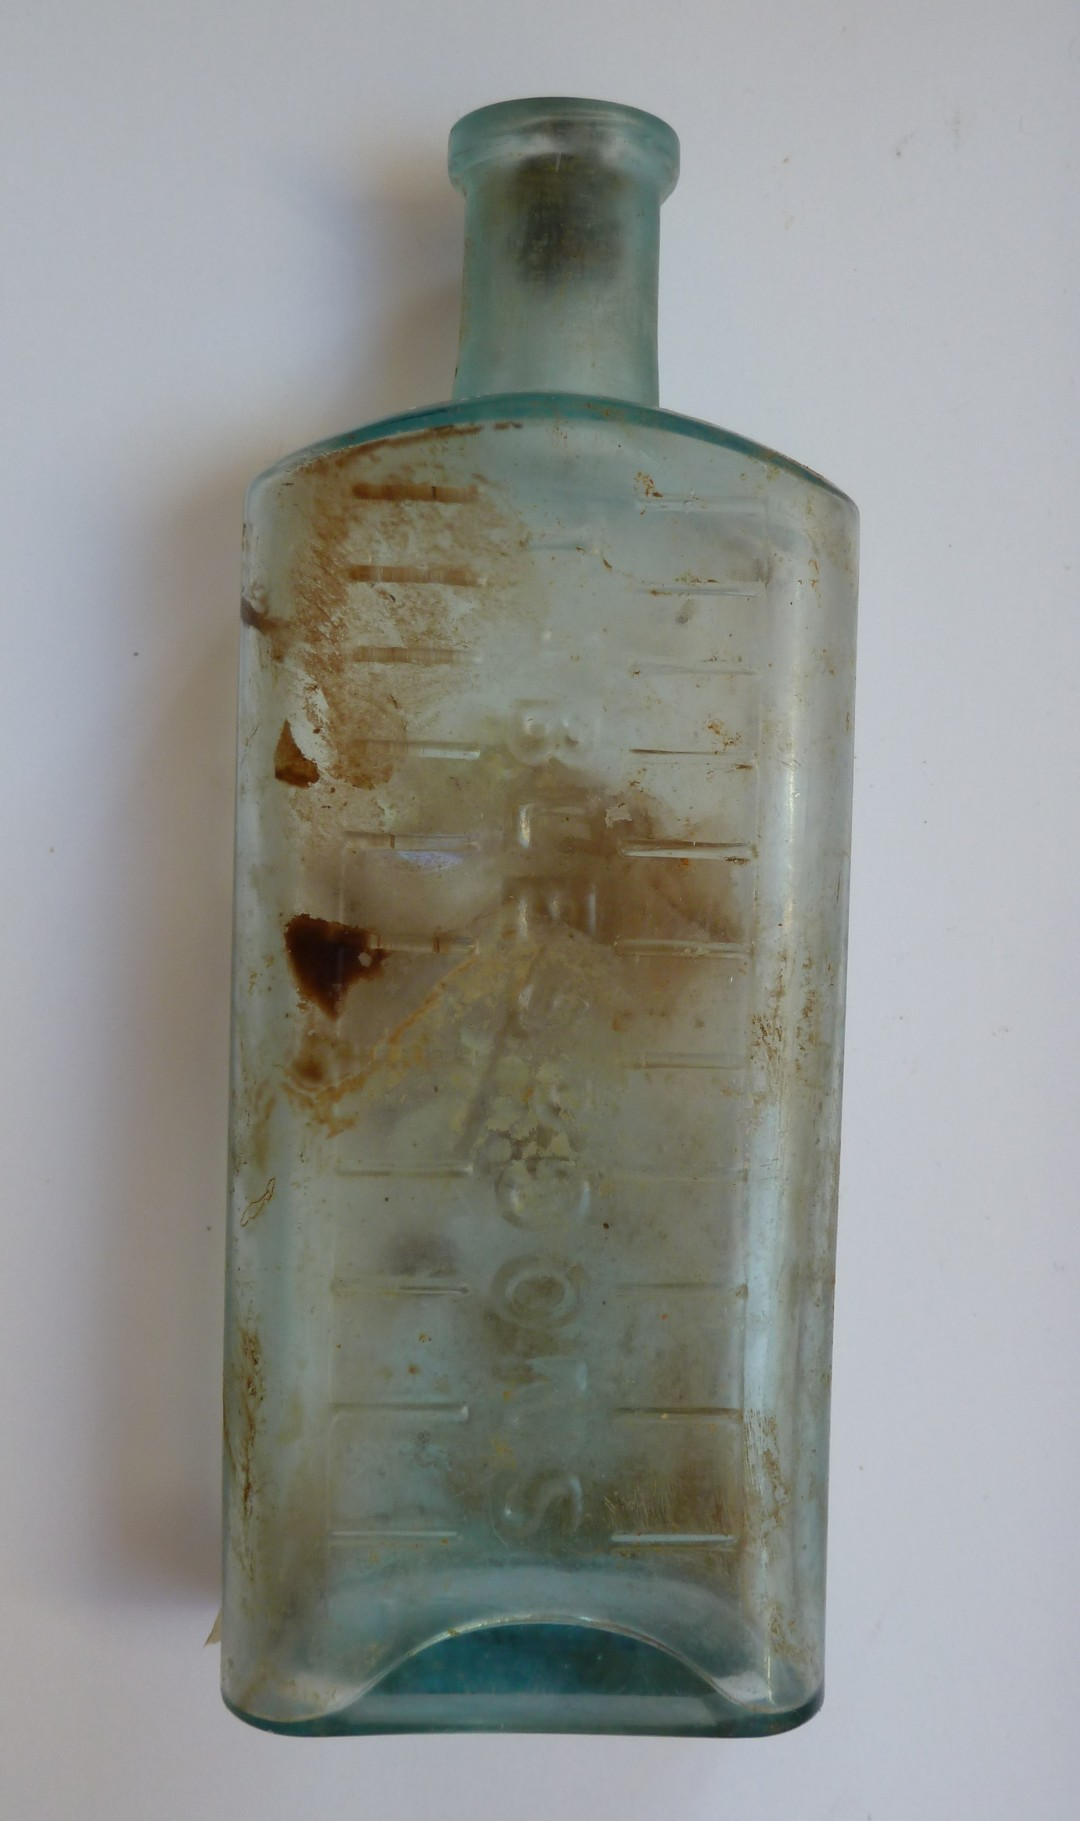 'Tablespoons' Medicine Bottle